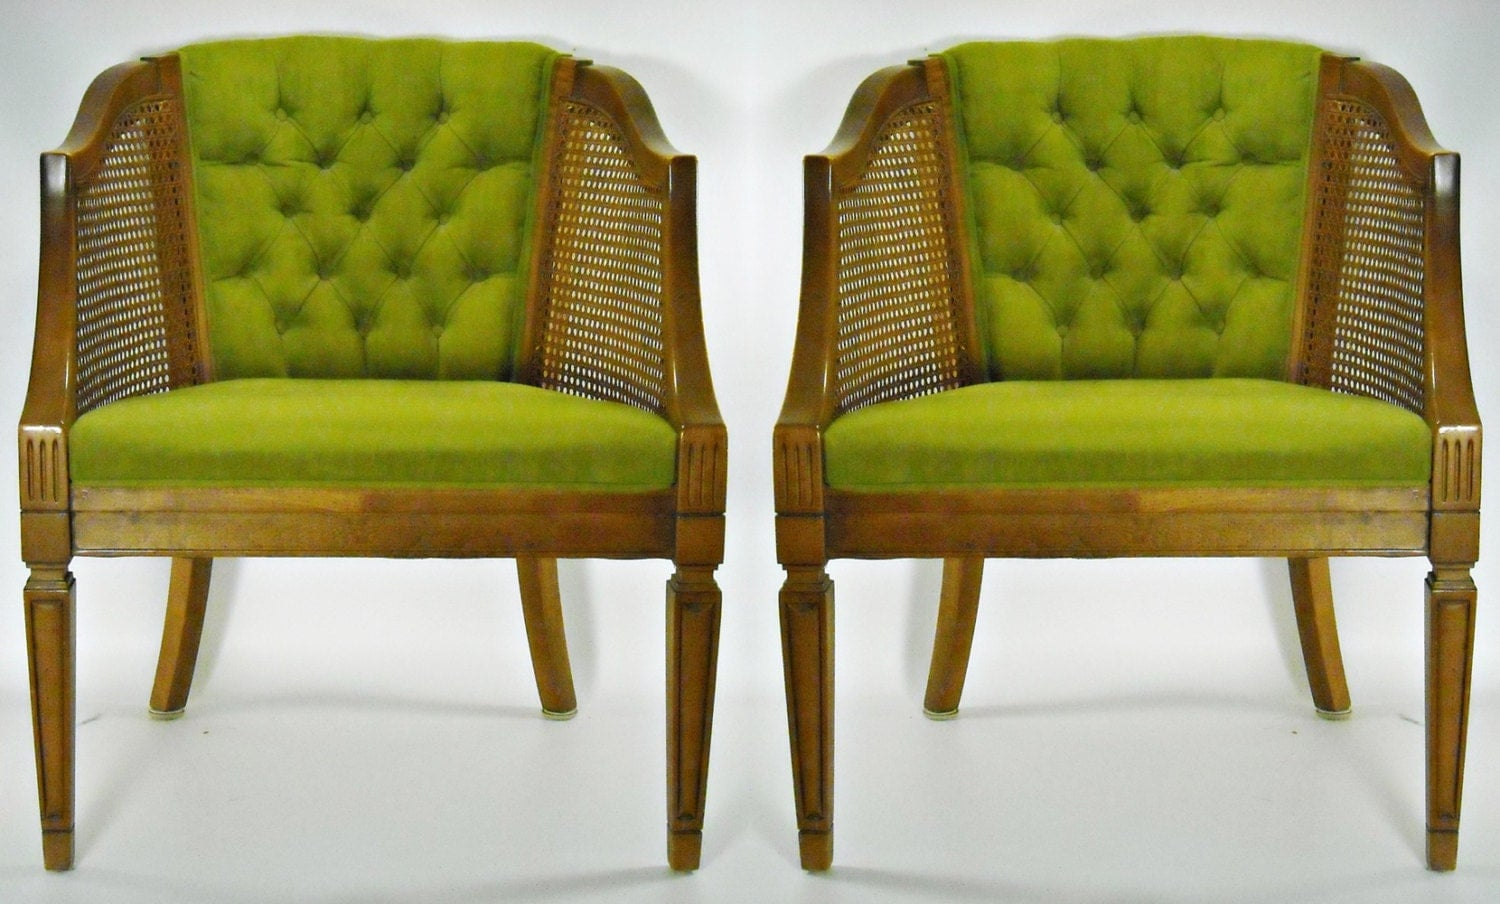 Wonderful image of Mid Century Chair Pair Cane Barrel Back Tufted by silverbranchhome with #4F5D0B color and 1500x904 pixels